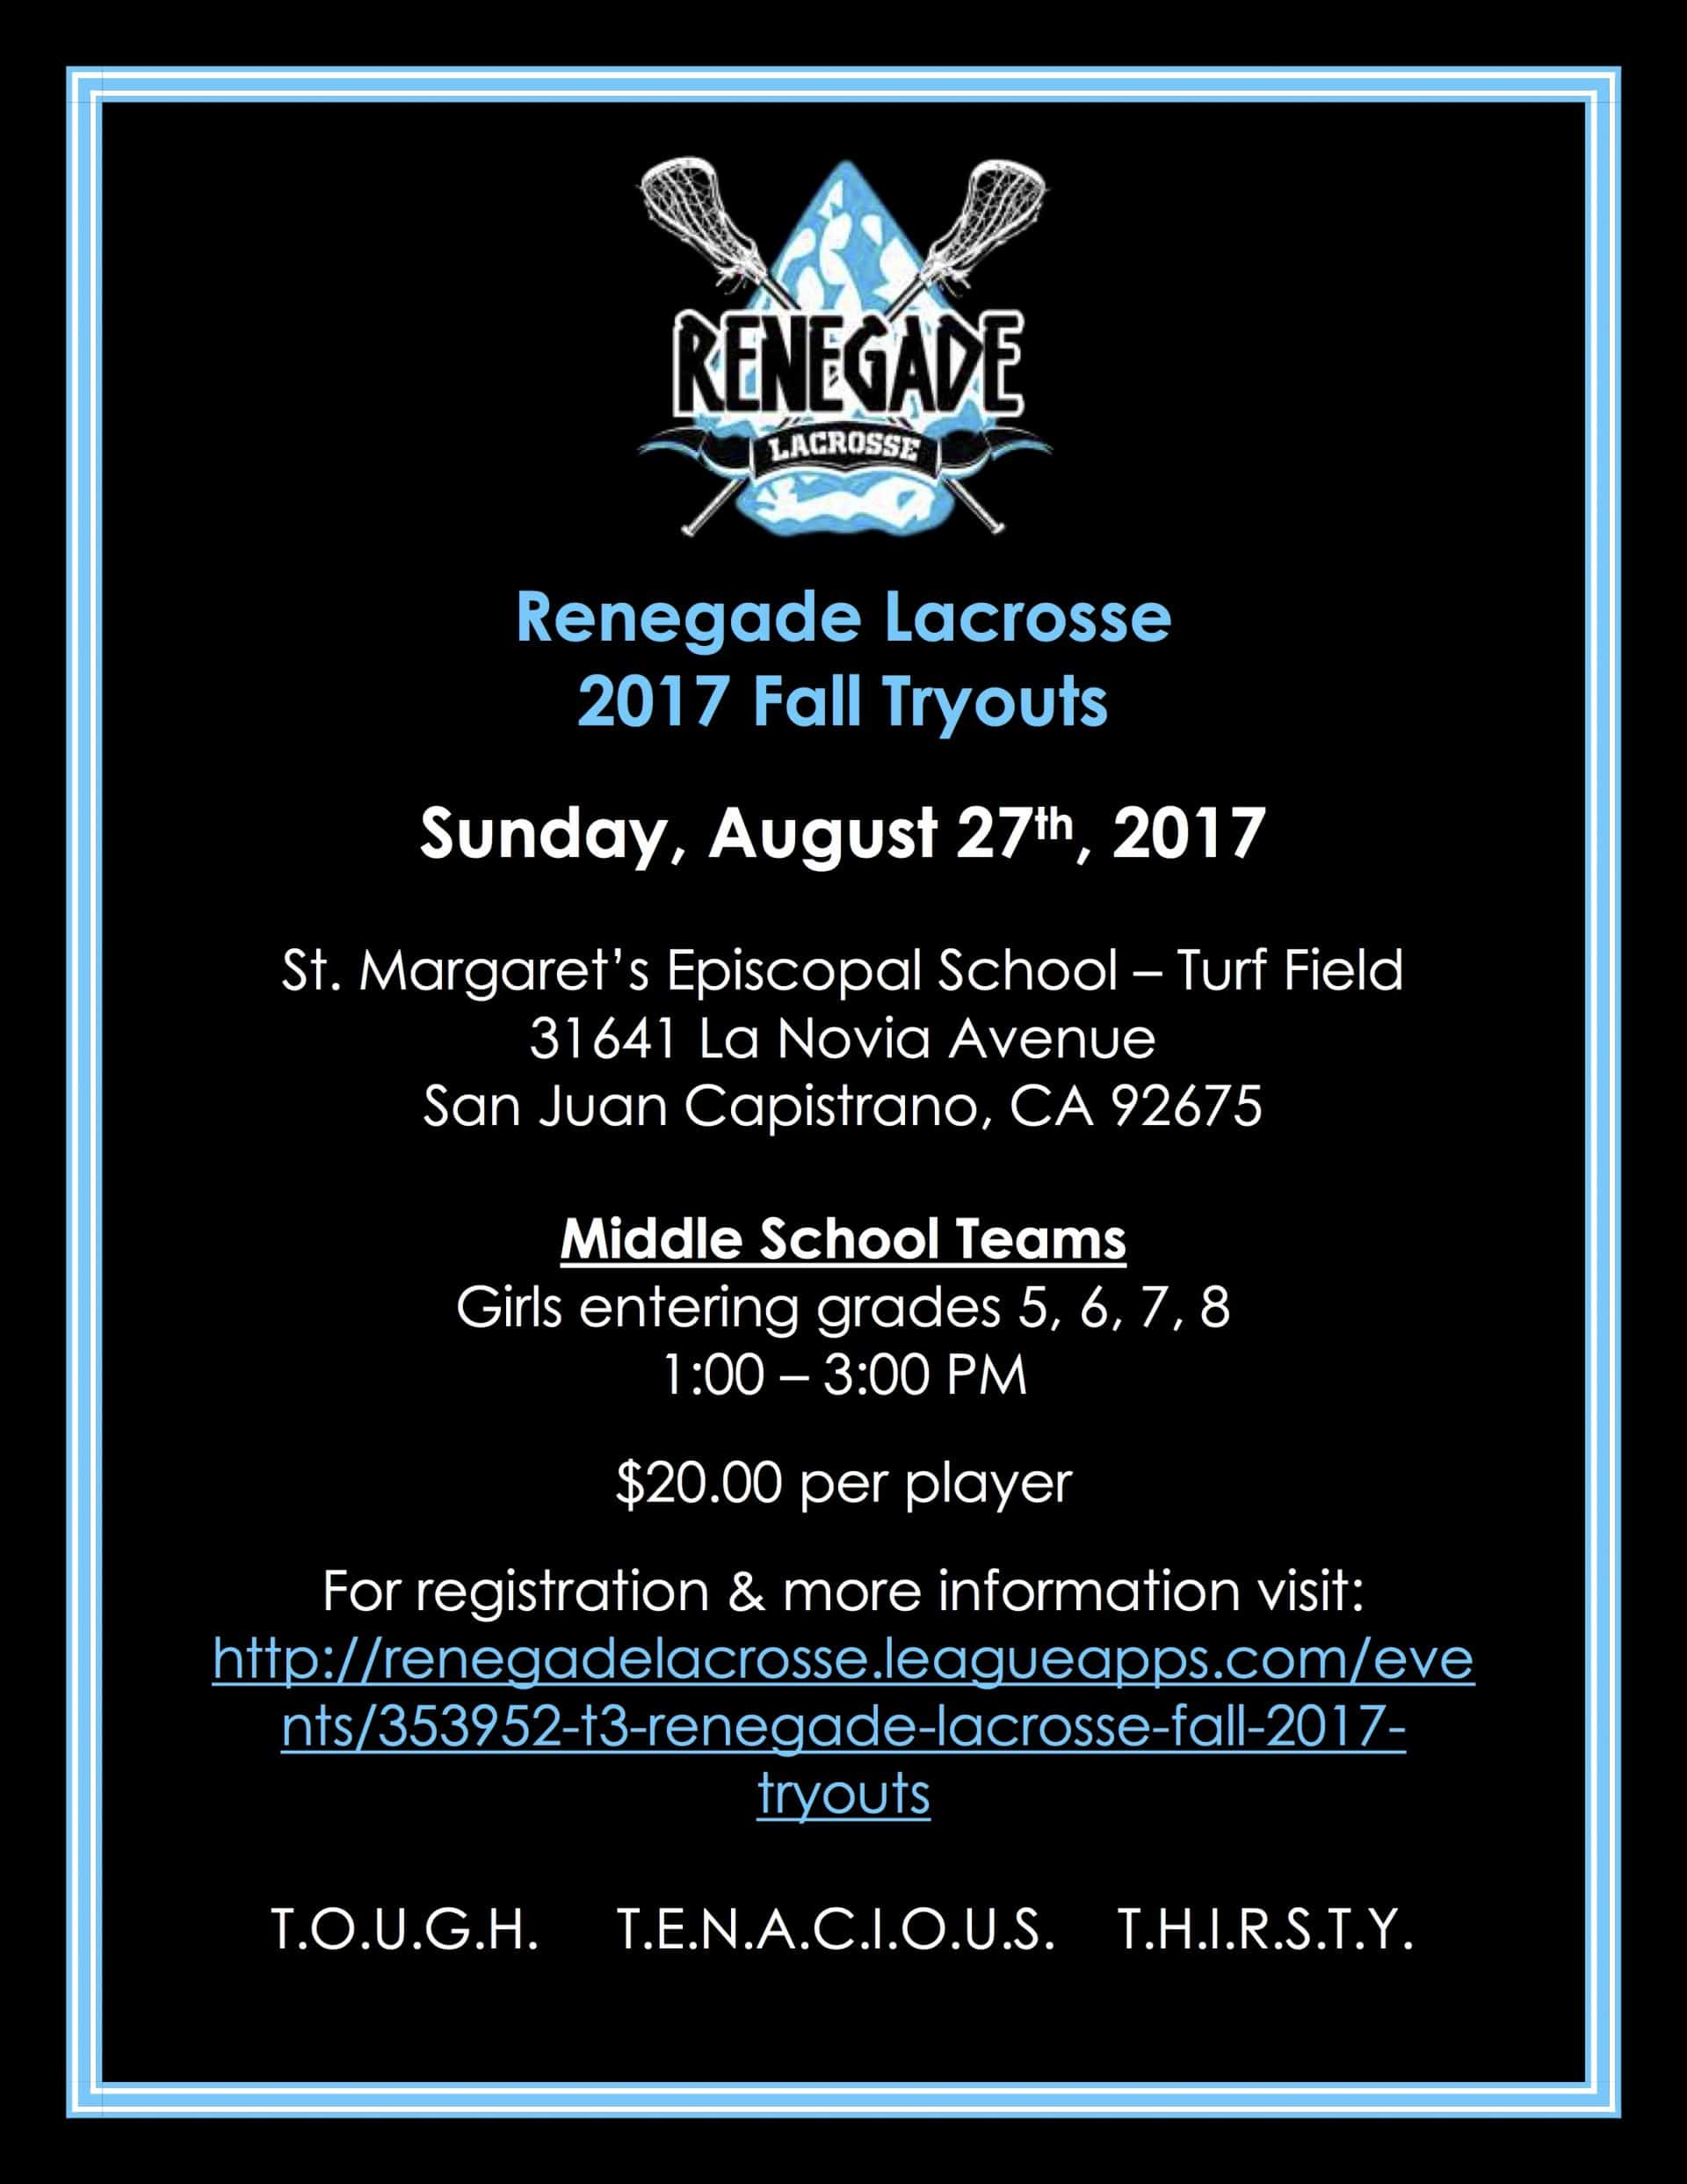 Renegade Lacrosse Powered by Holly Reilly